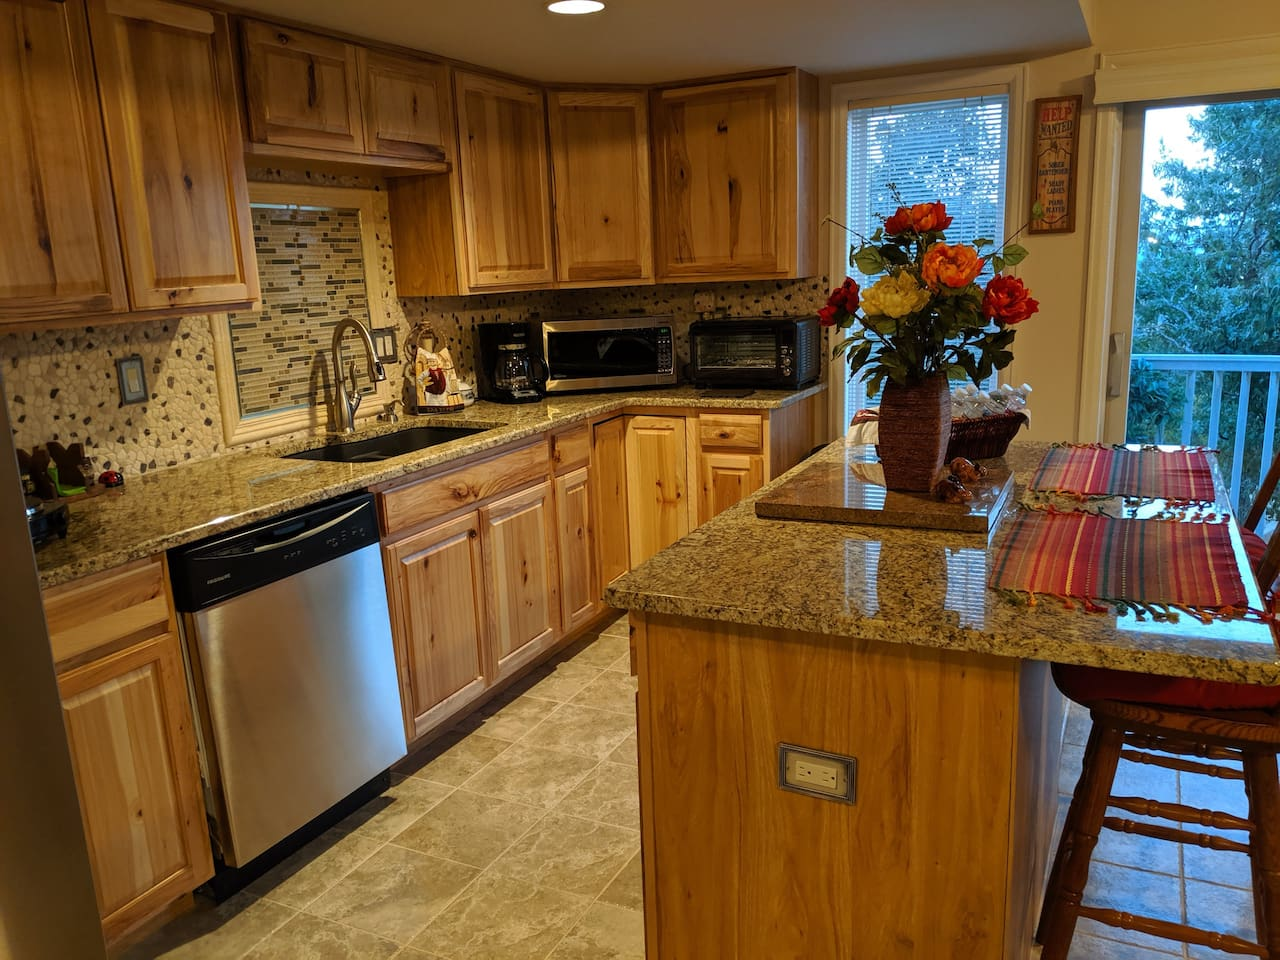 Newly remodeled kitchen with lots of supplies for cooking.